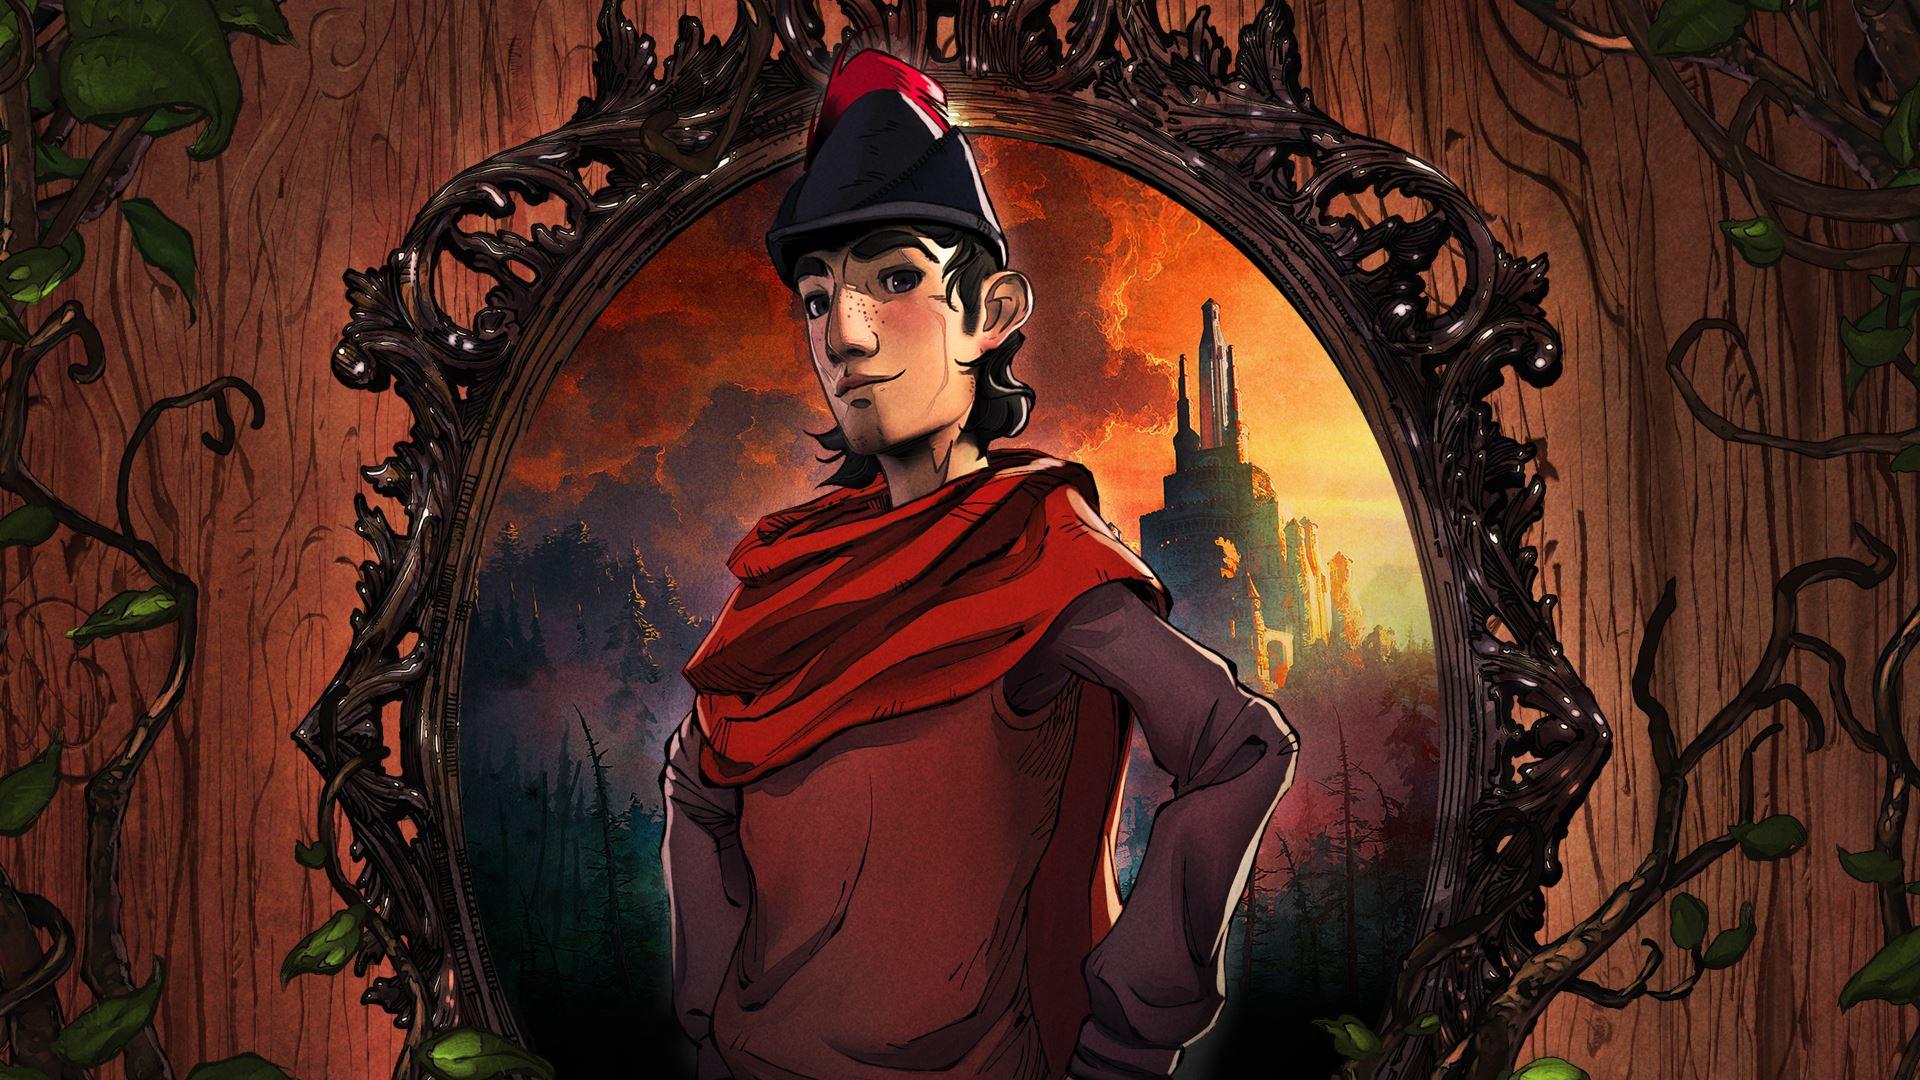 King's Quest – Champter 1 A Knight to Remember,